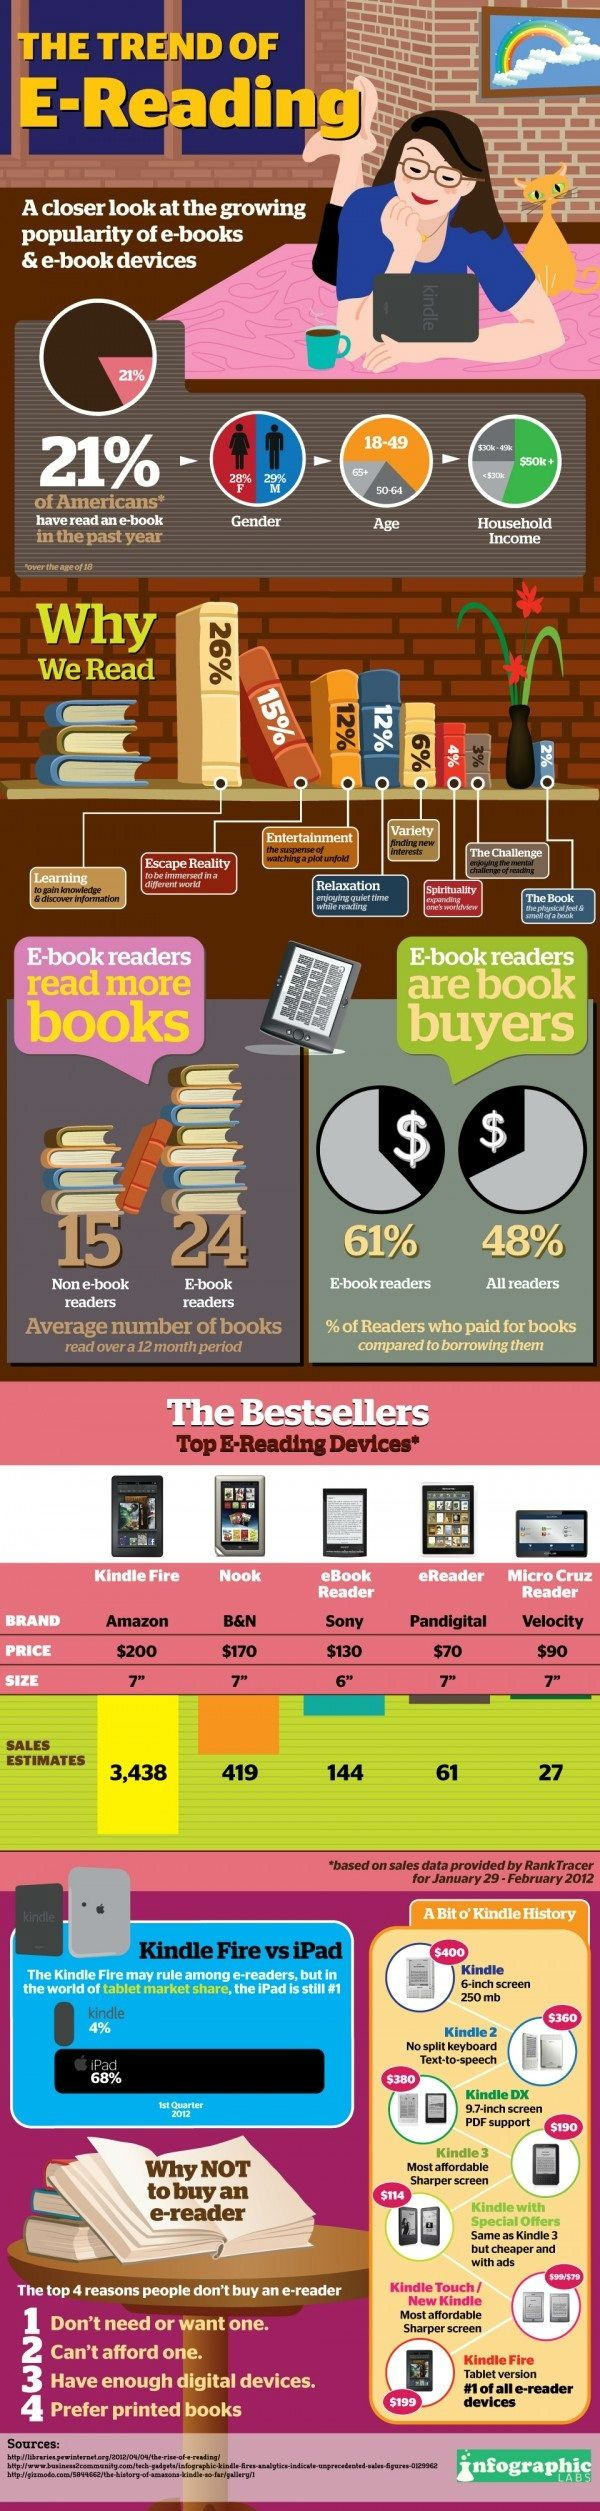 pEbooks are growing fast and here is another infographic to picture it. Infographic Labs created this visual on the findings of a Pew study. A part about reasons to read books is especially interesting, as well as the comparison between non-ebook and ebook readers regarding the number of books read over /p